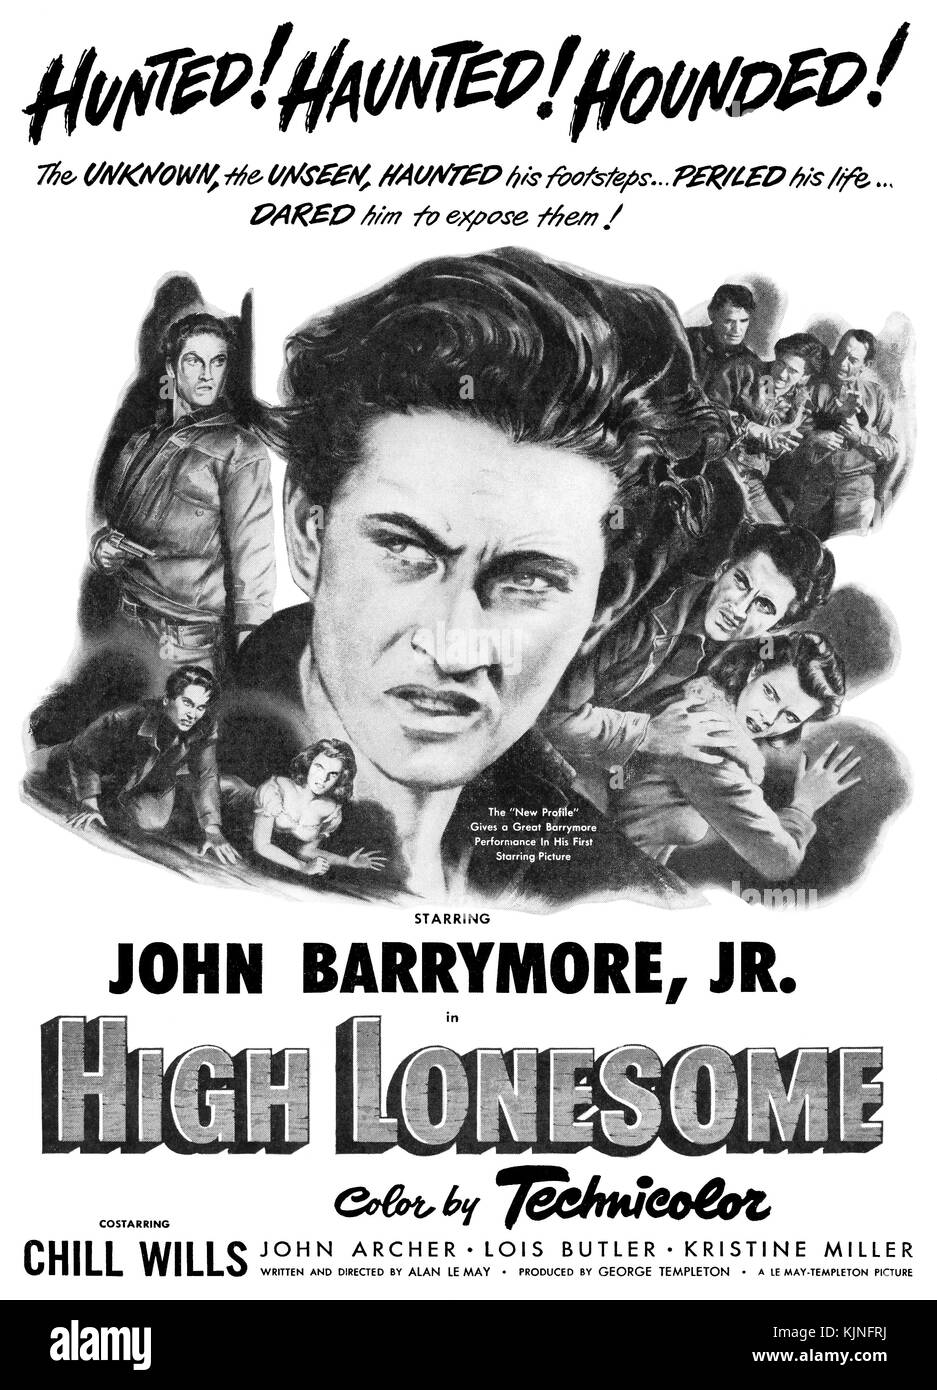 Advertising-print Collectibles Collection Here Original Print Ad 1950 High Lonesome Movie Ad John Barrymore Jr